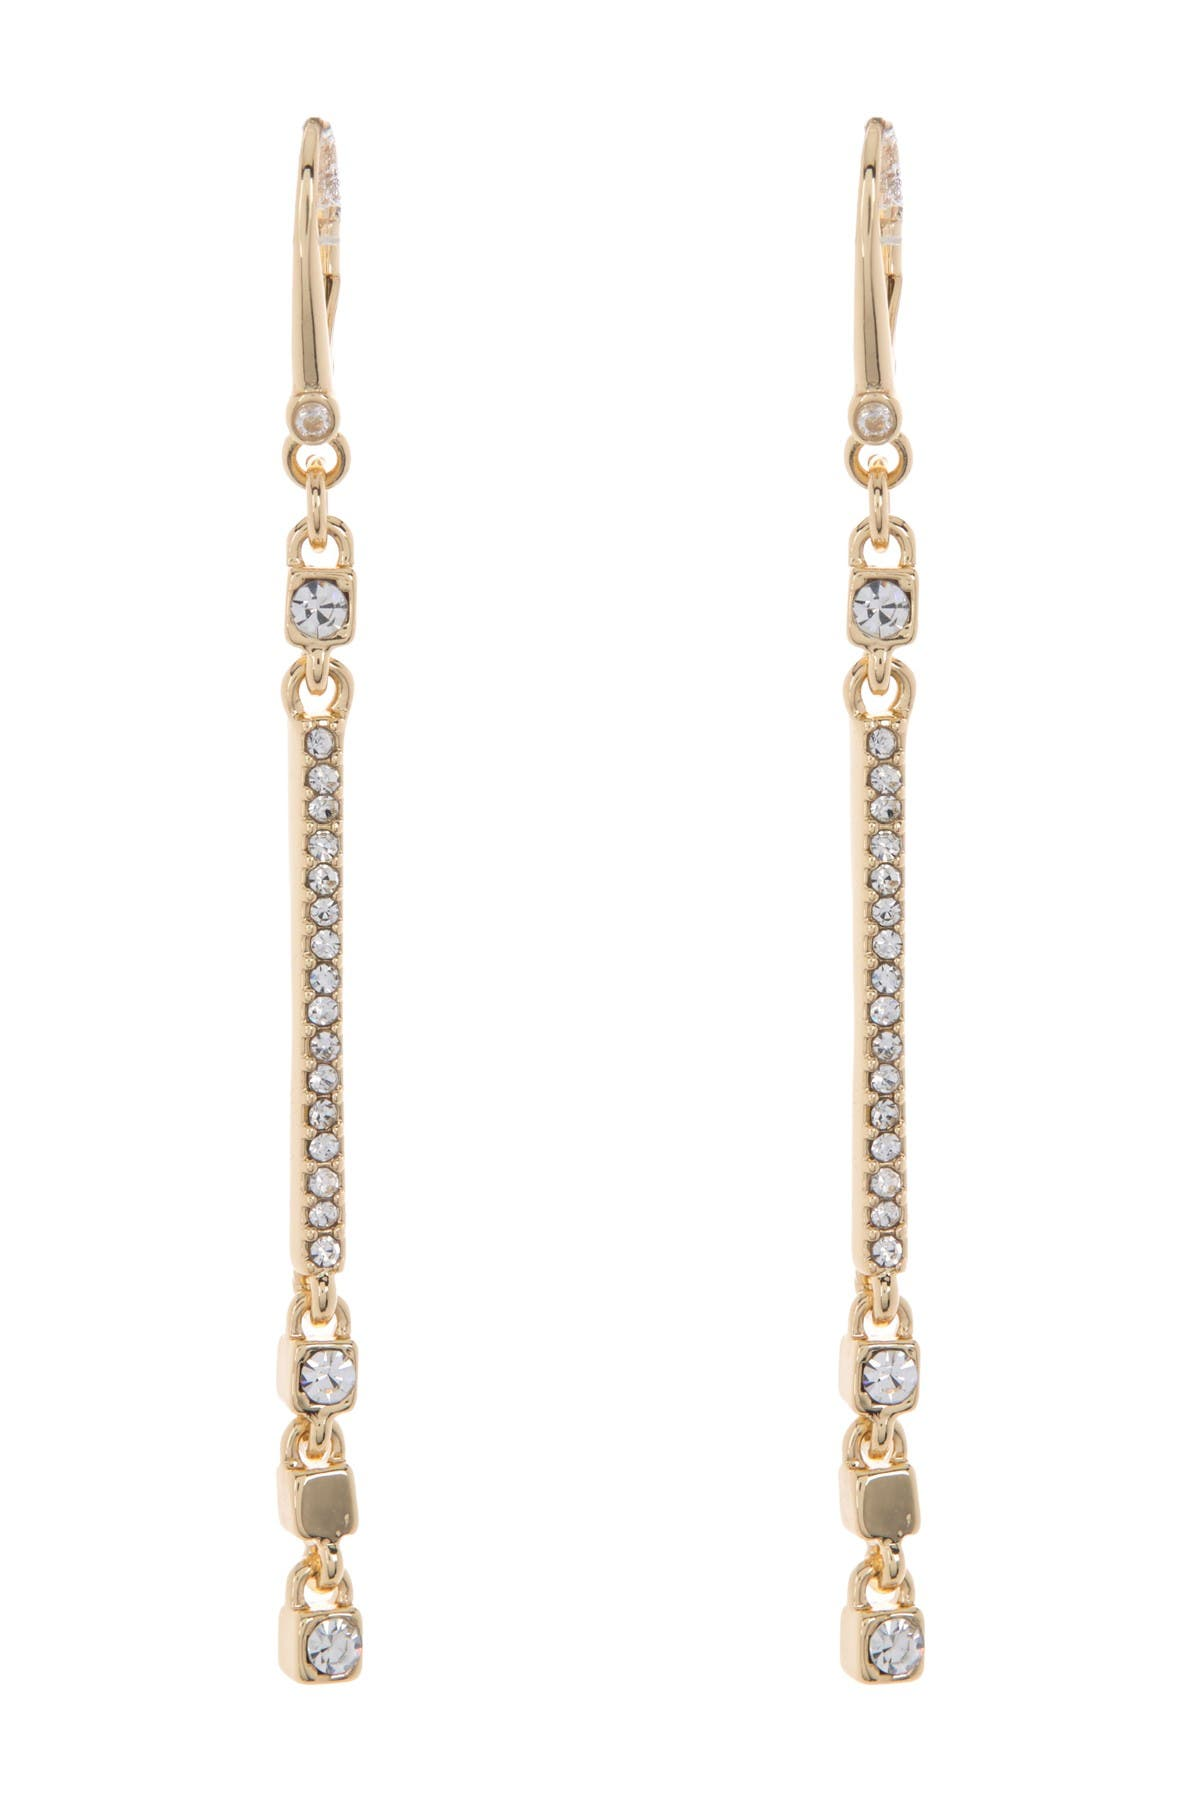 Image of DKNY Pave Cube Linear Dangle Earrings